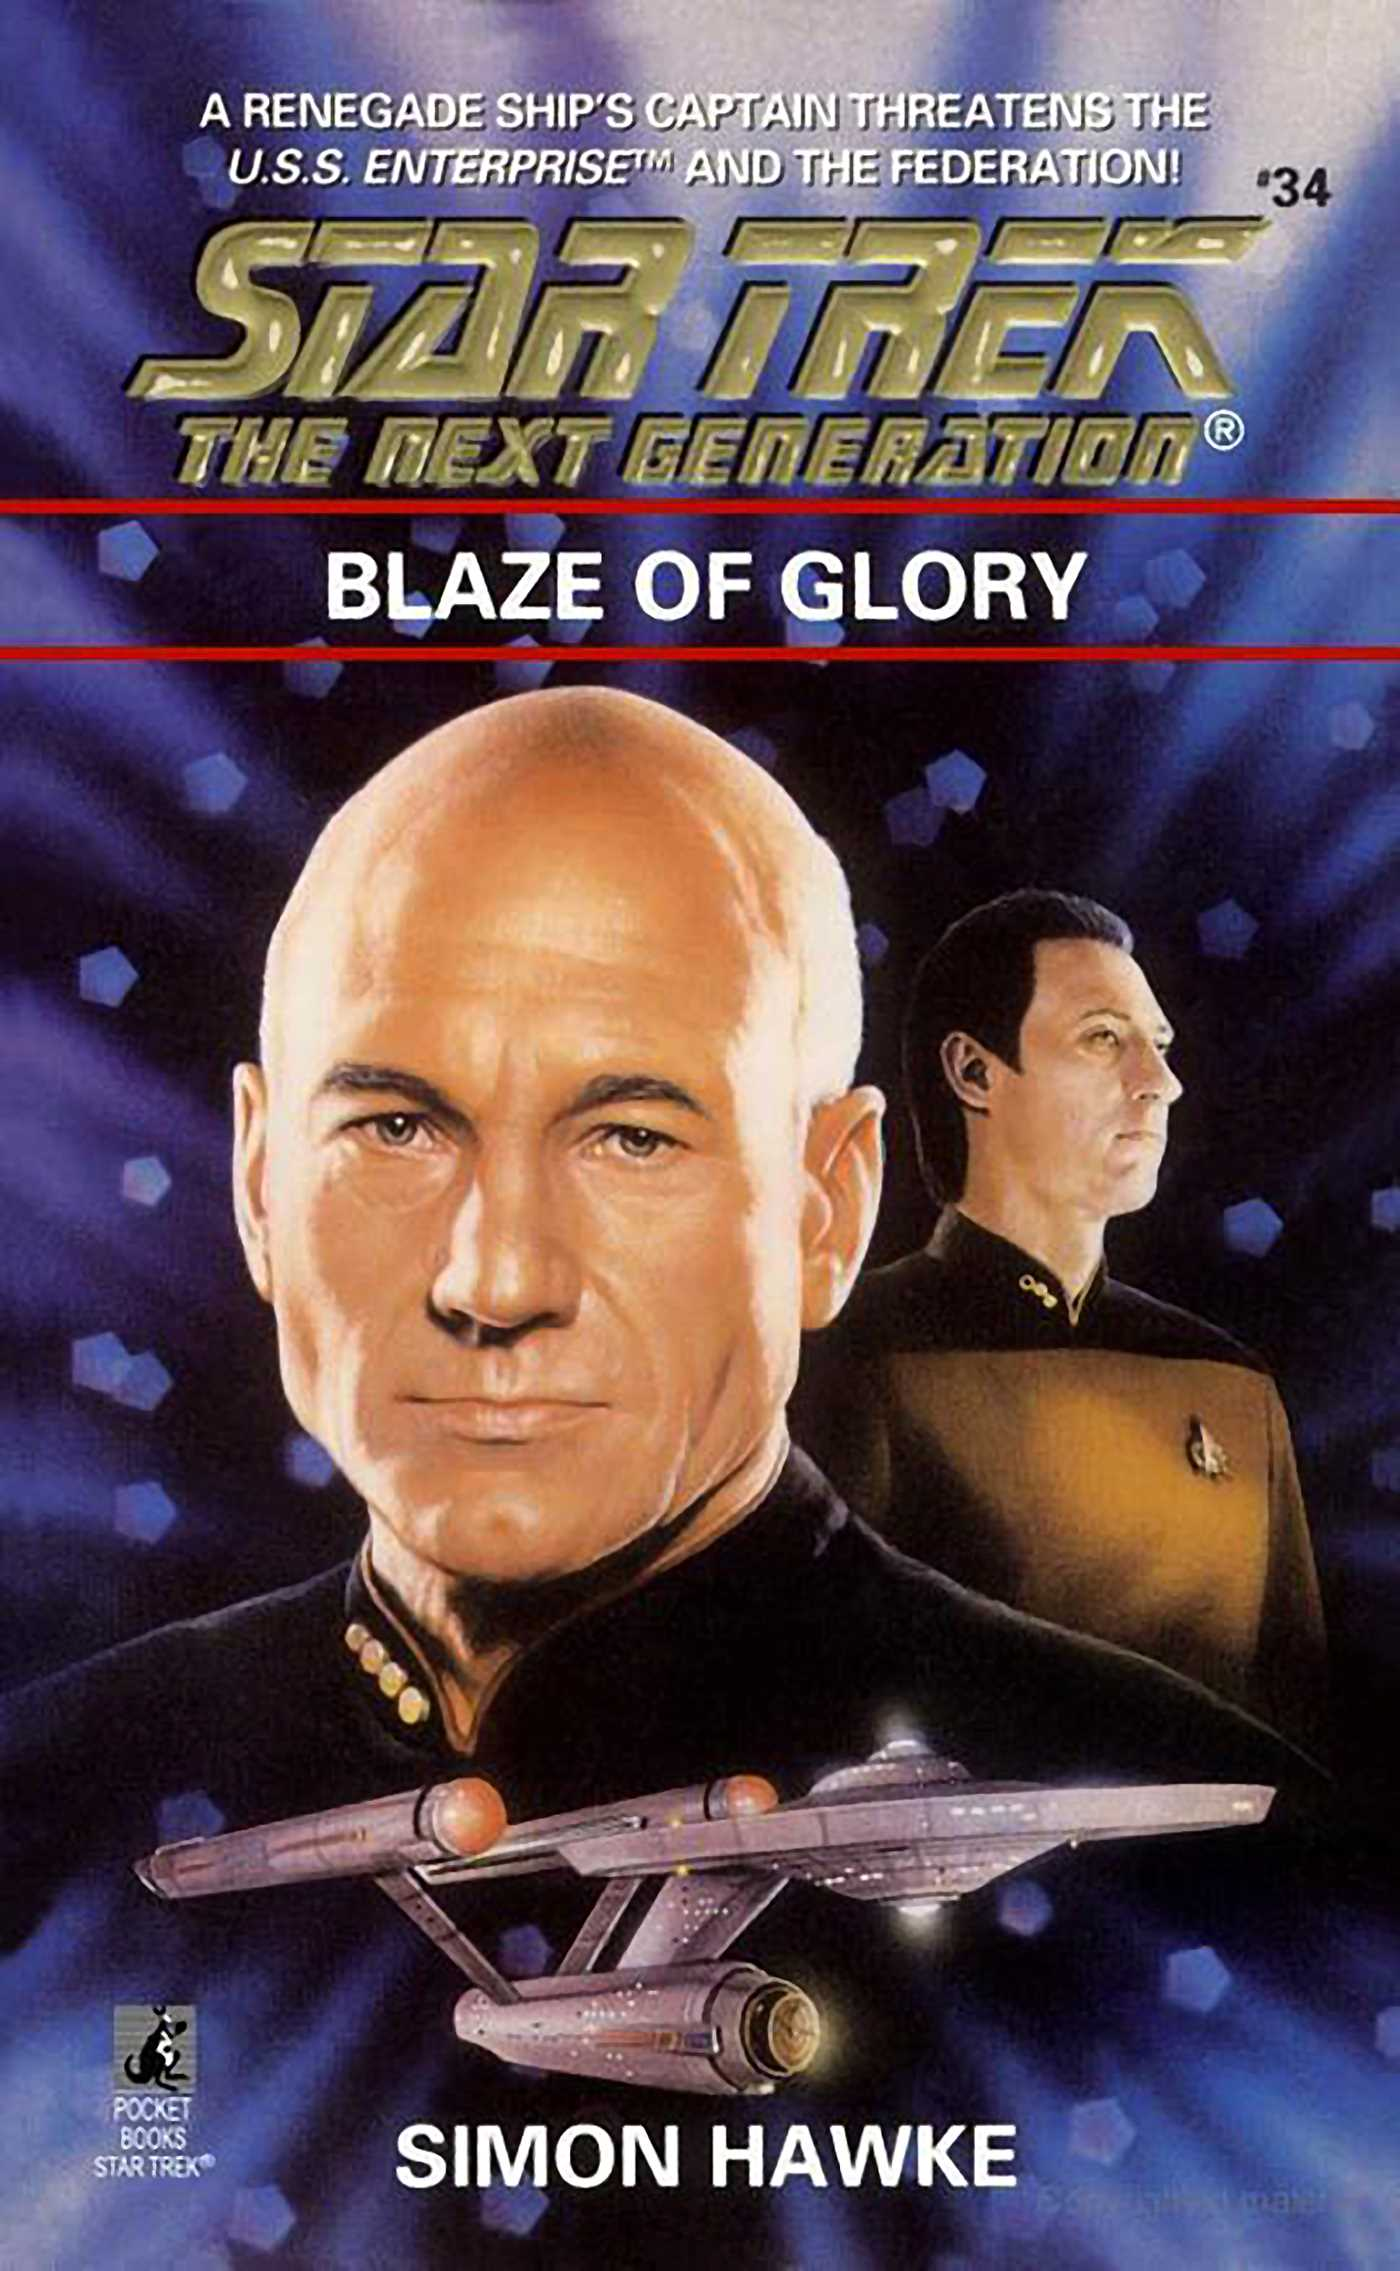 Blaze-of-glory-9780743421232_hr